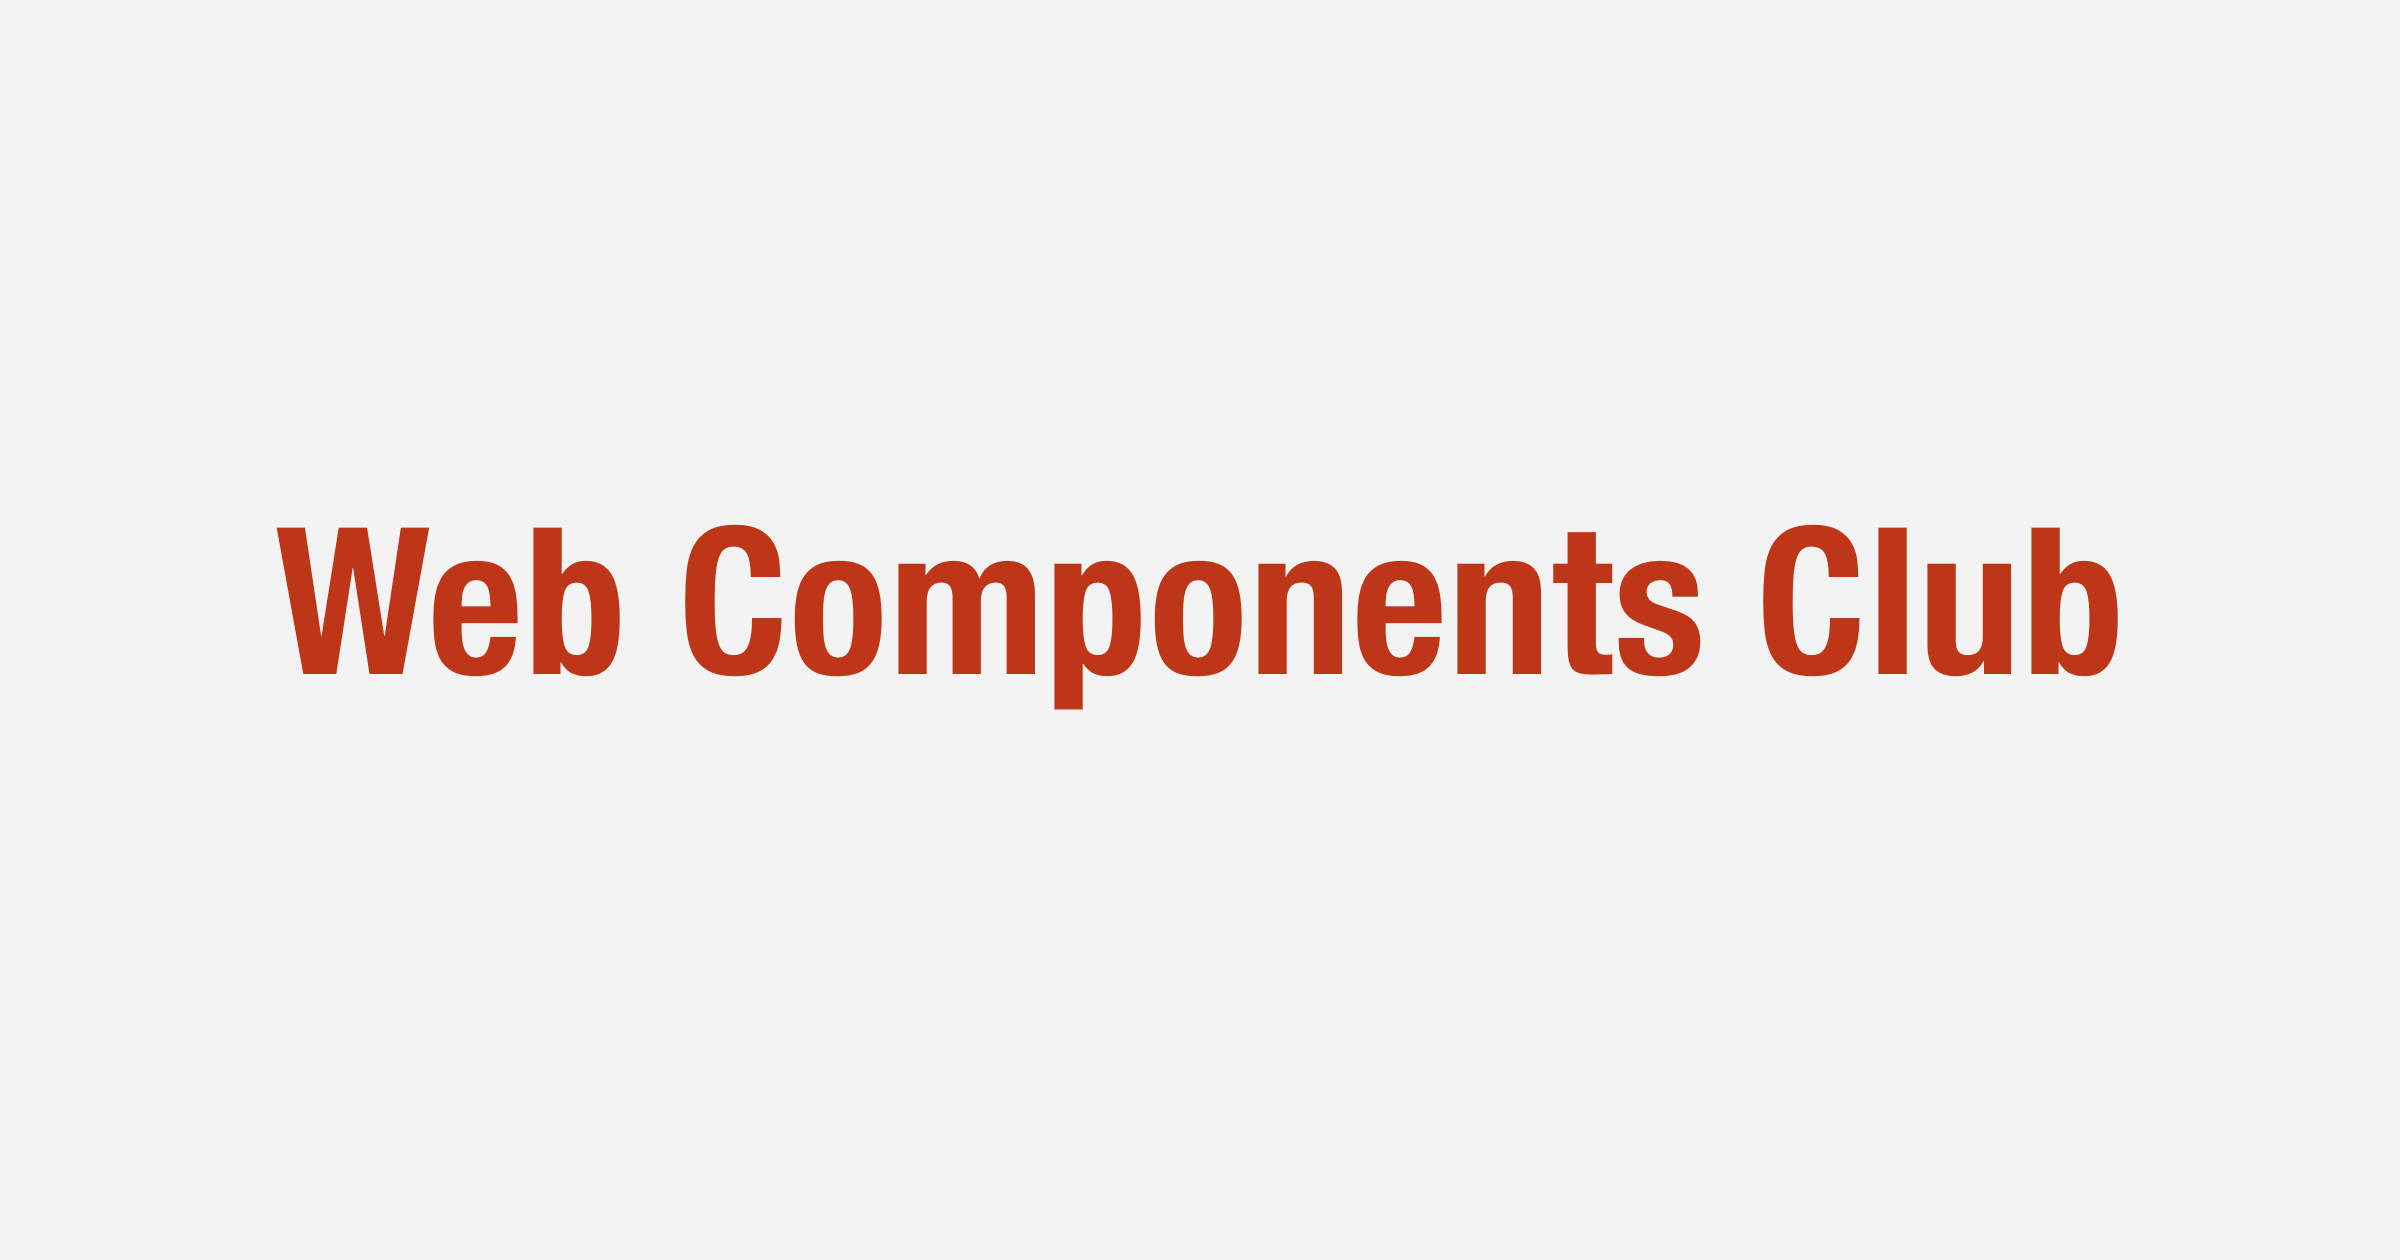 005: Service workers - Web Components Club